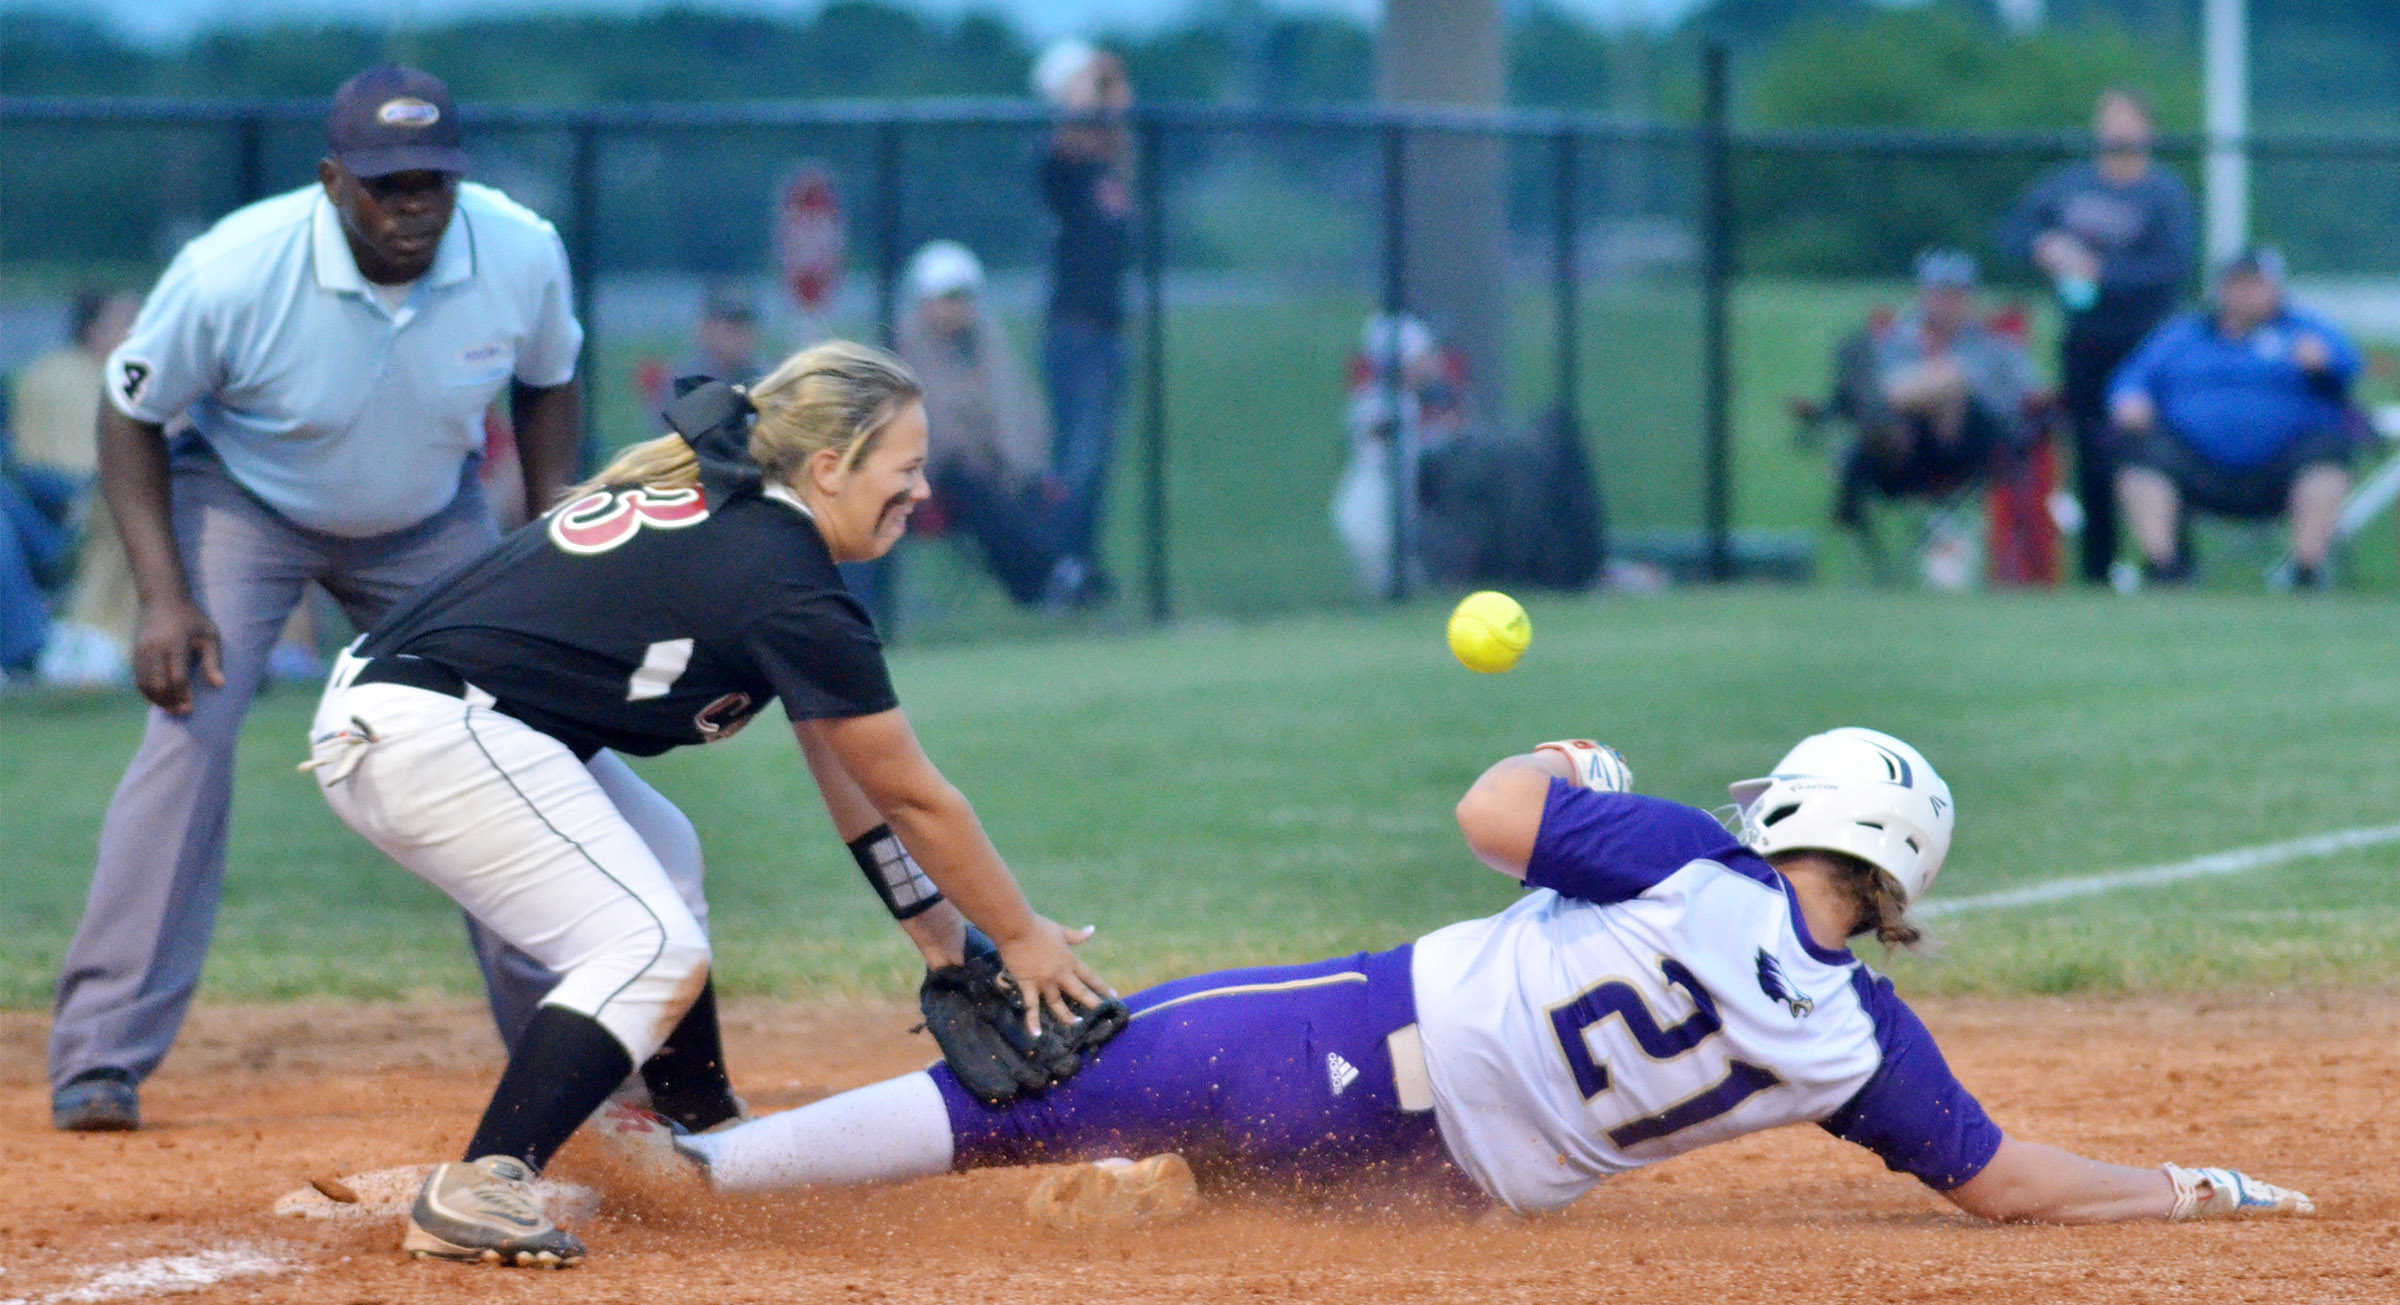 CHS senior Brenna Wethington is safe at third.